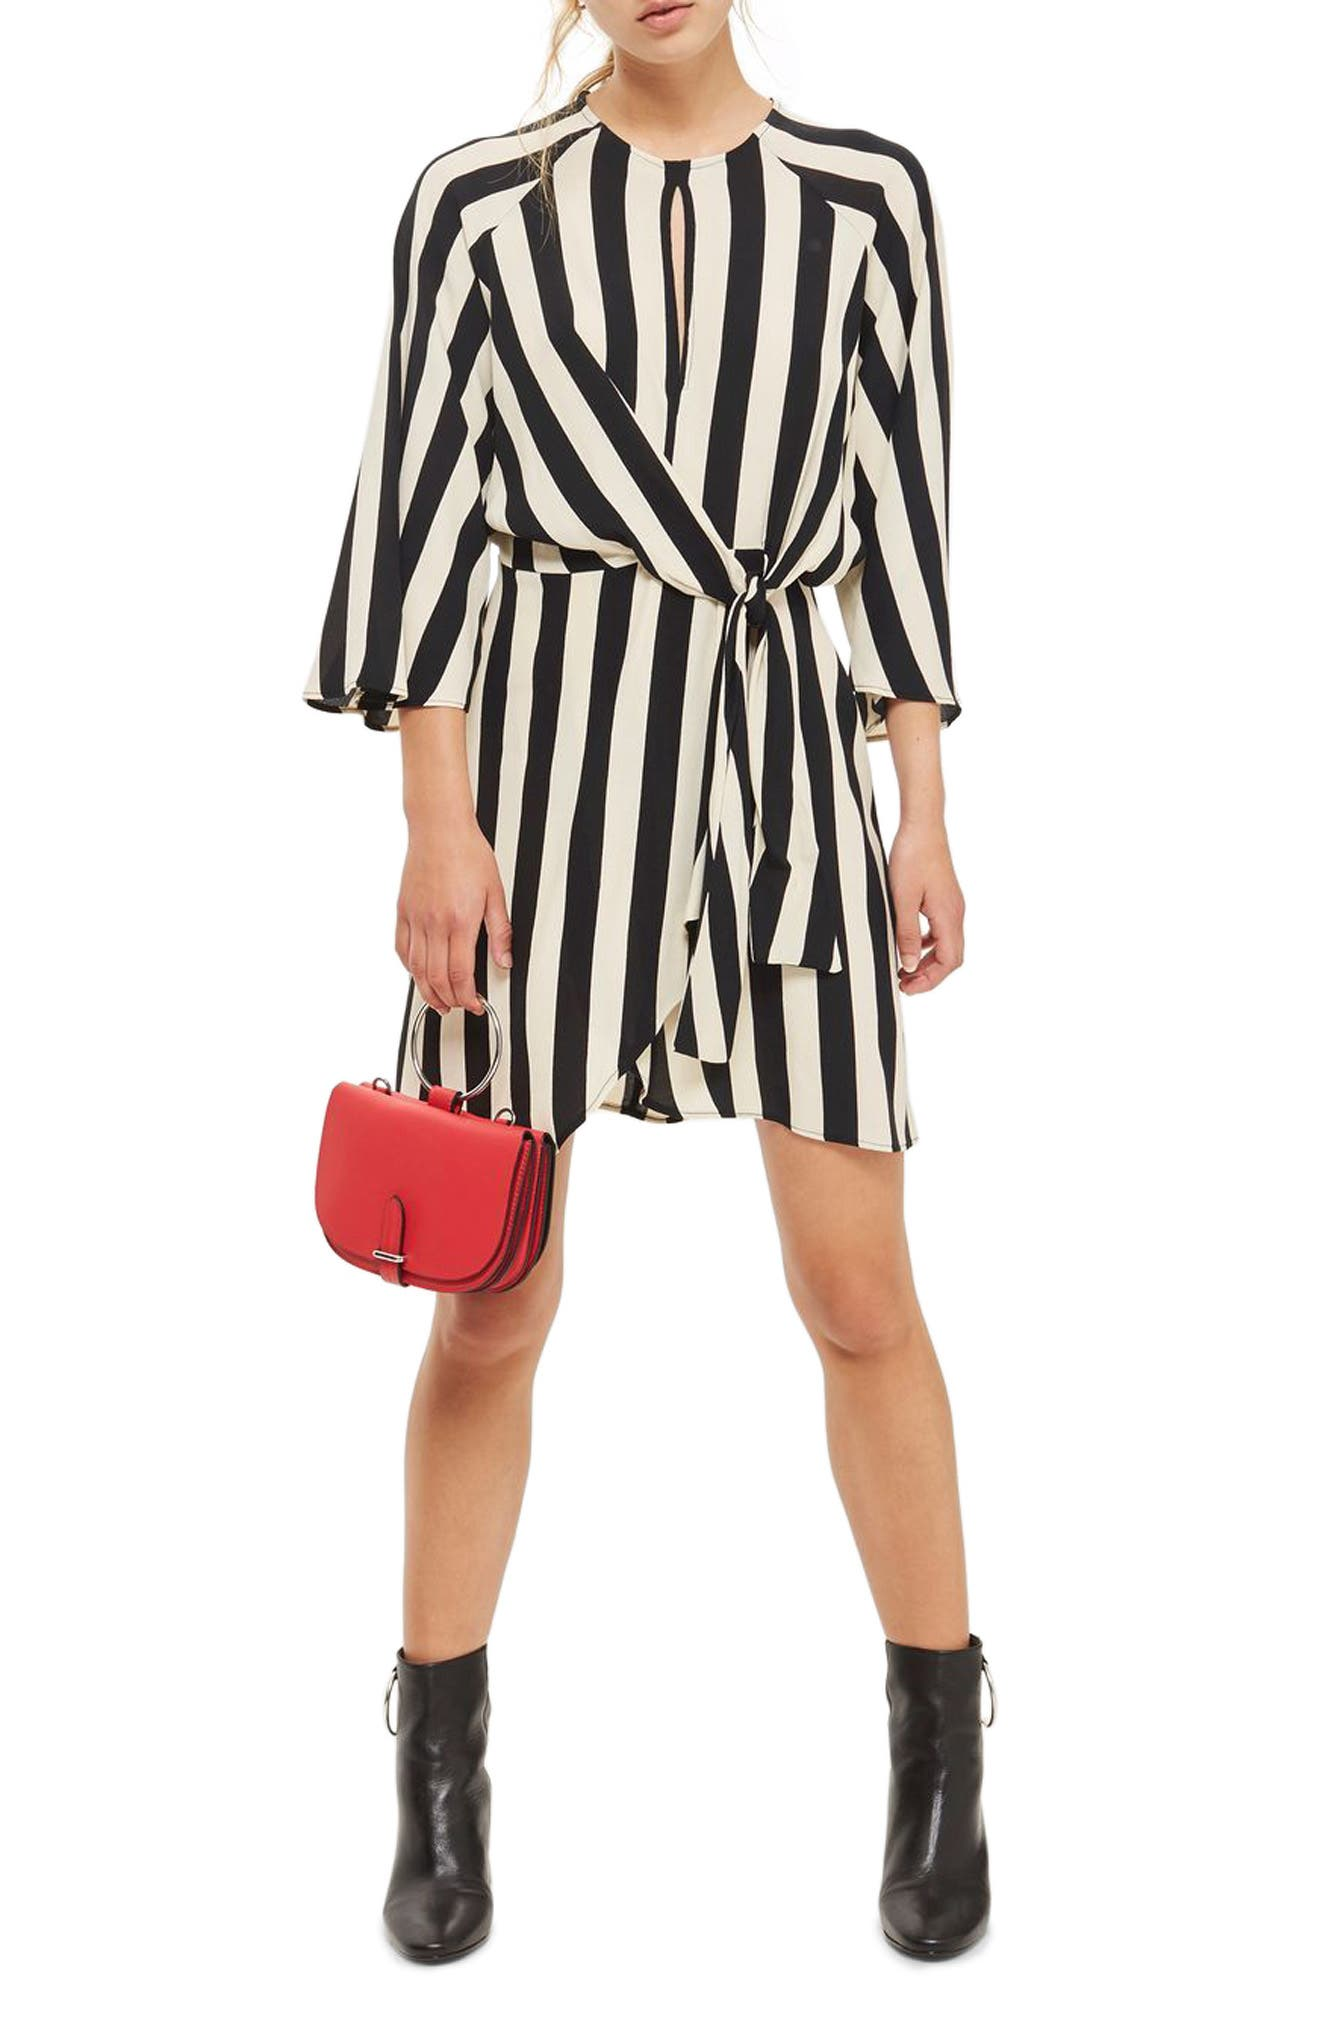 Topshop Humbug Stripe Knot Dress